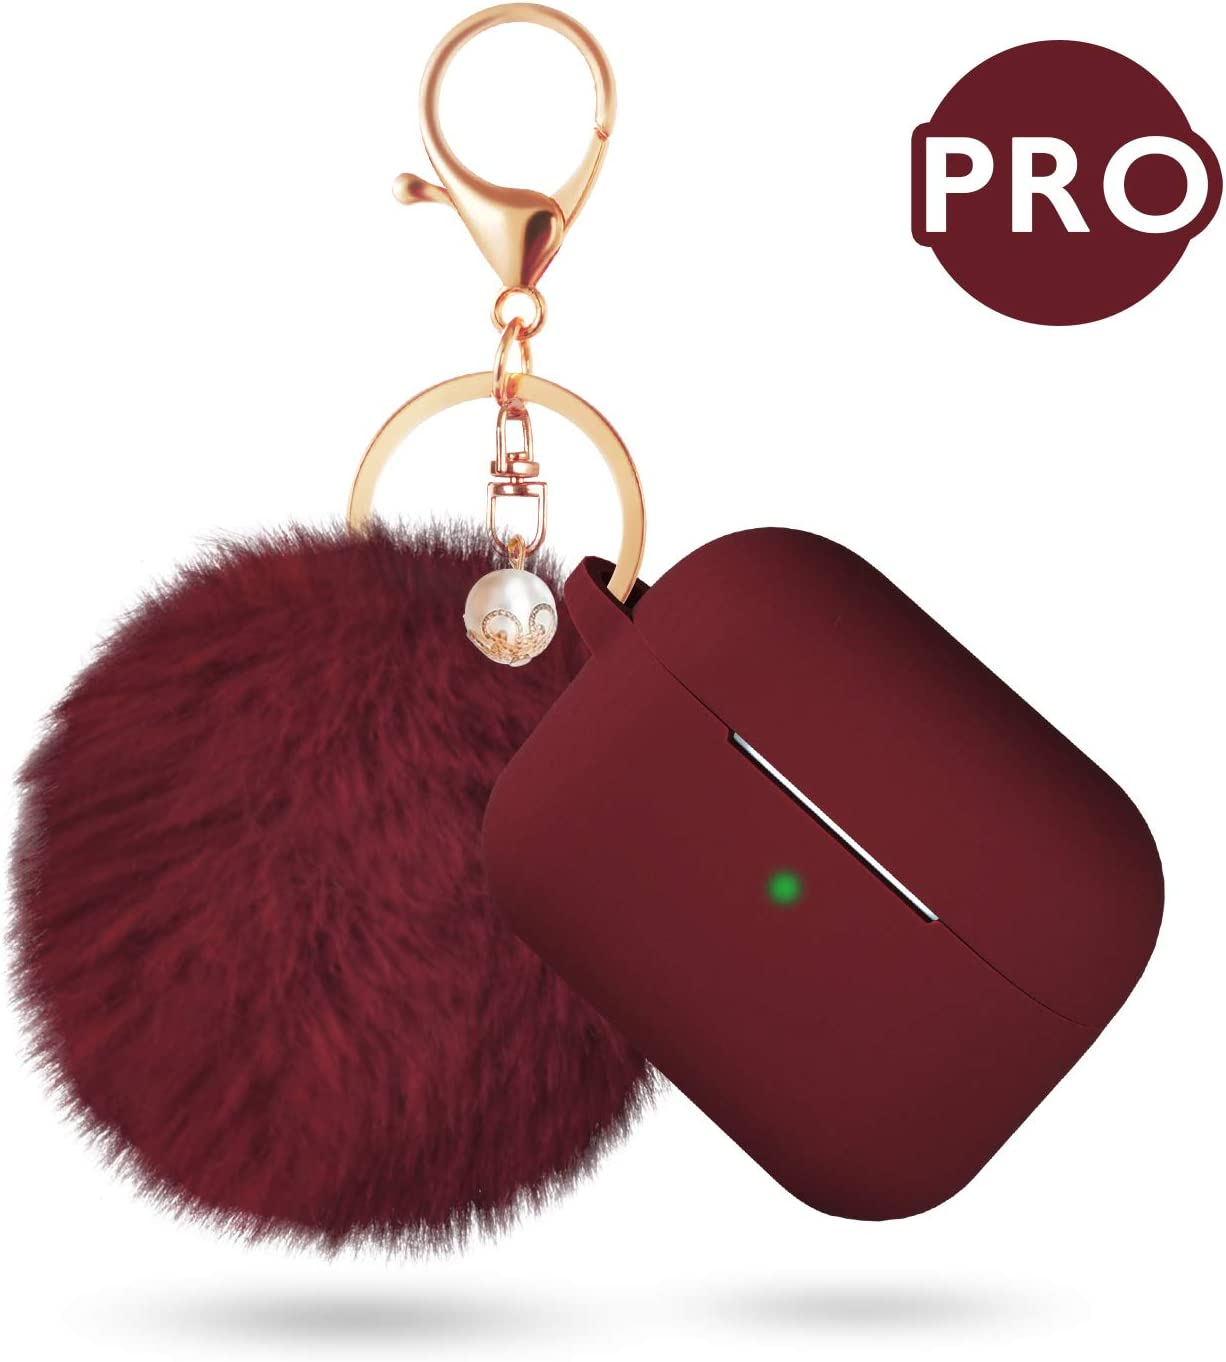 Caseology Vault for Apple AirPods Pro Case 2019 Burgundy